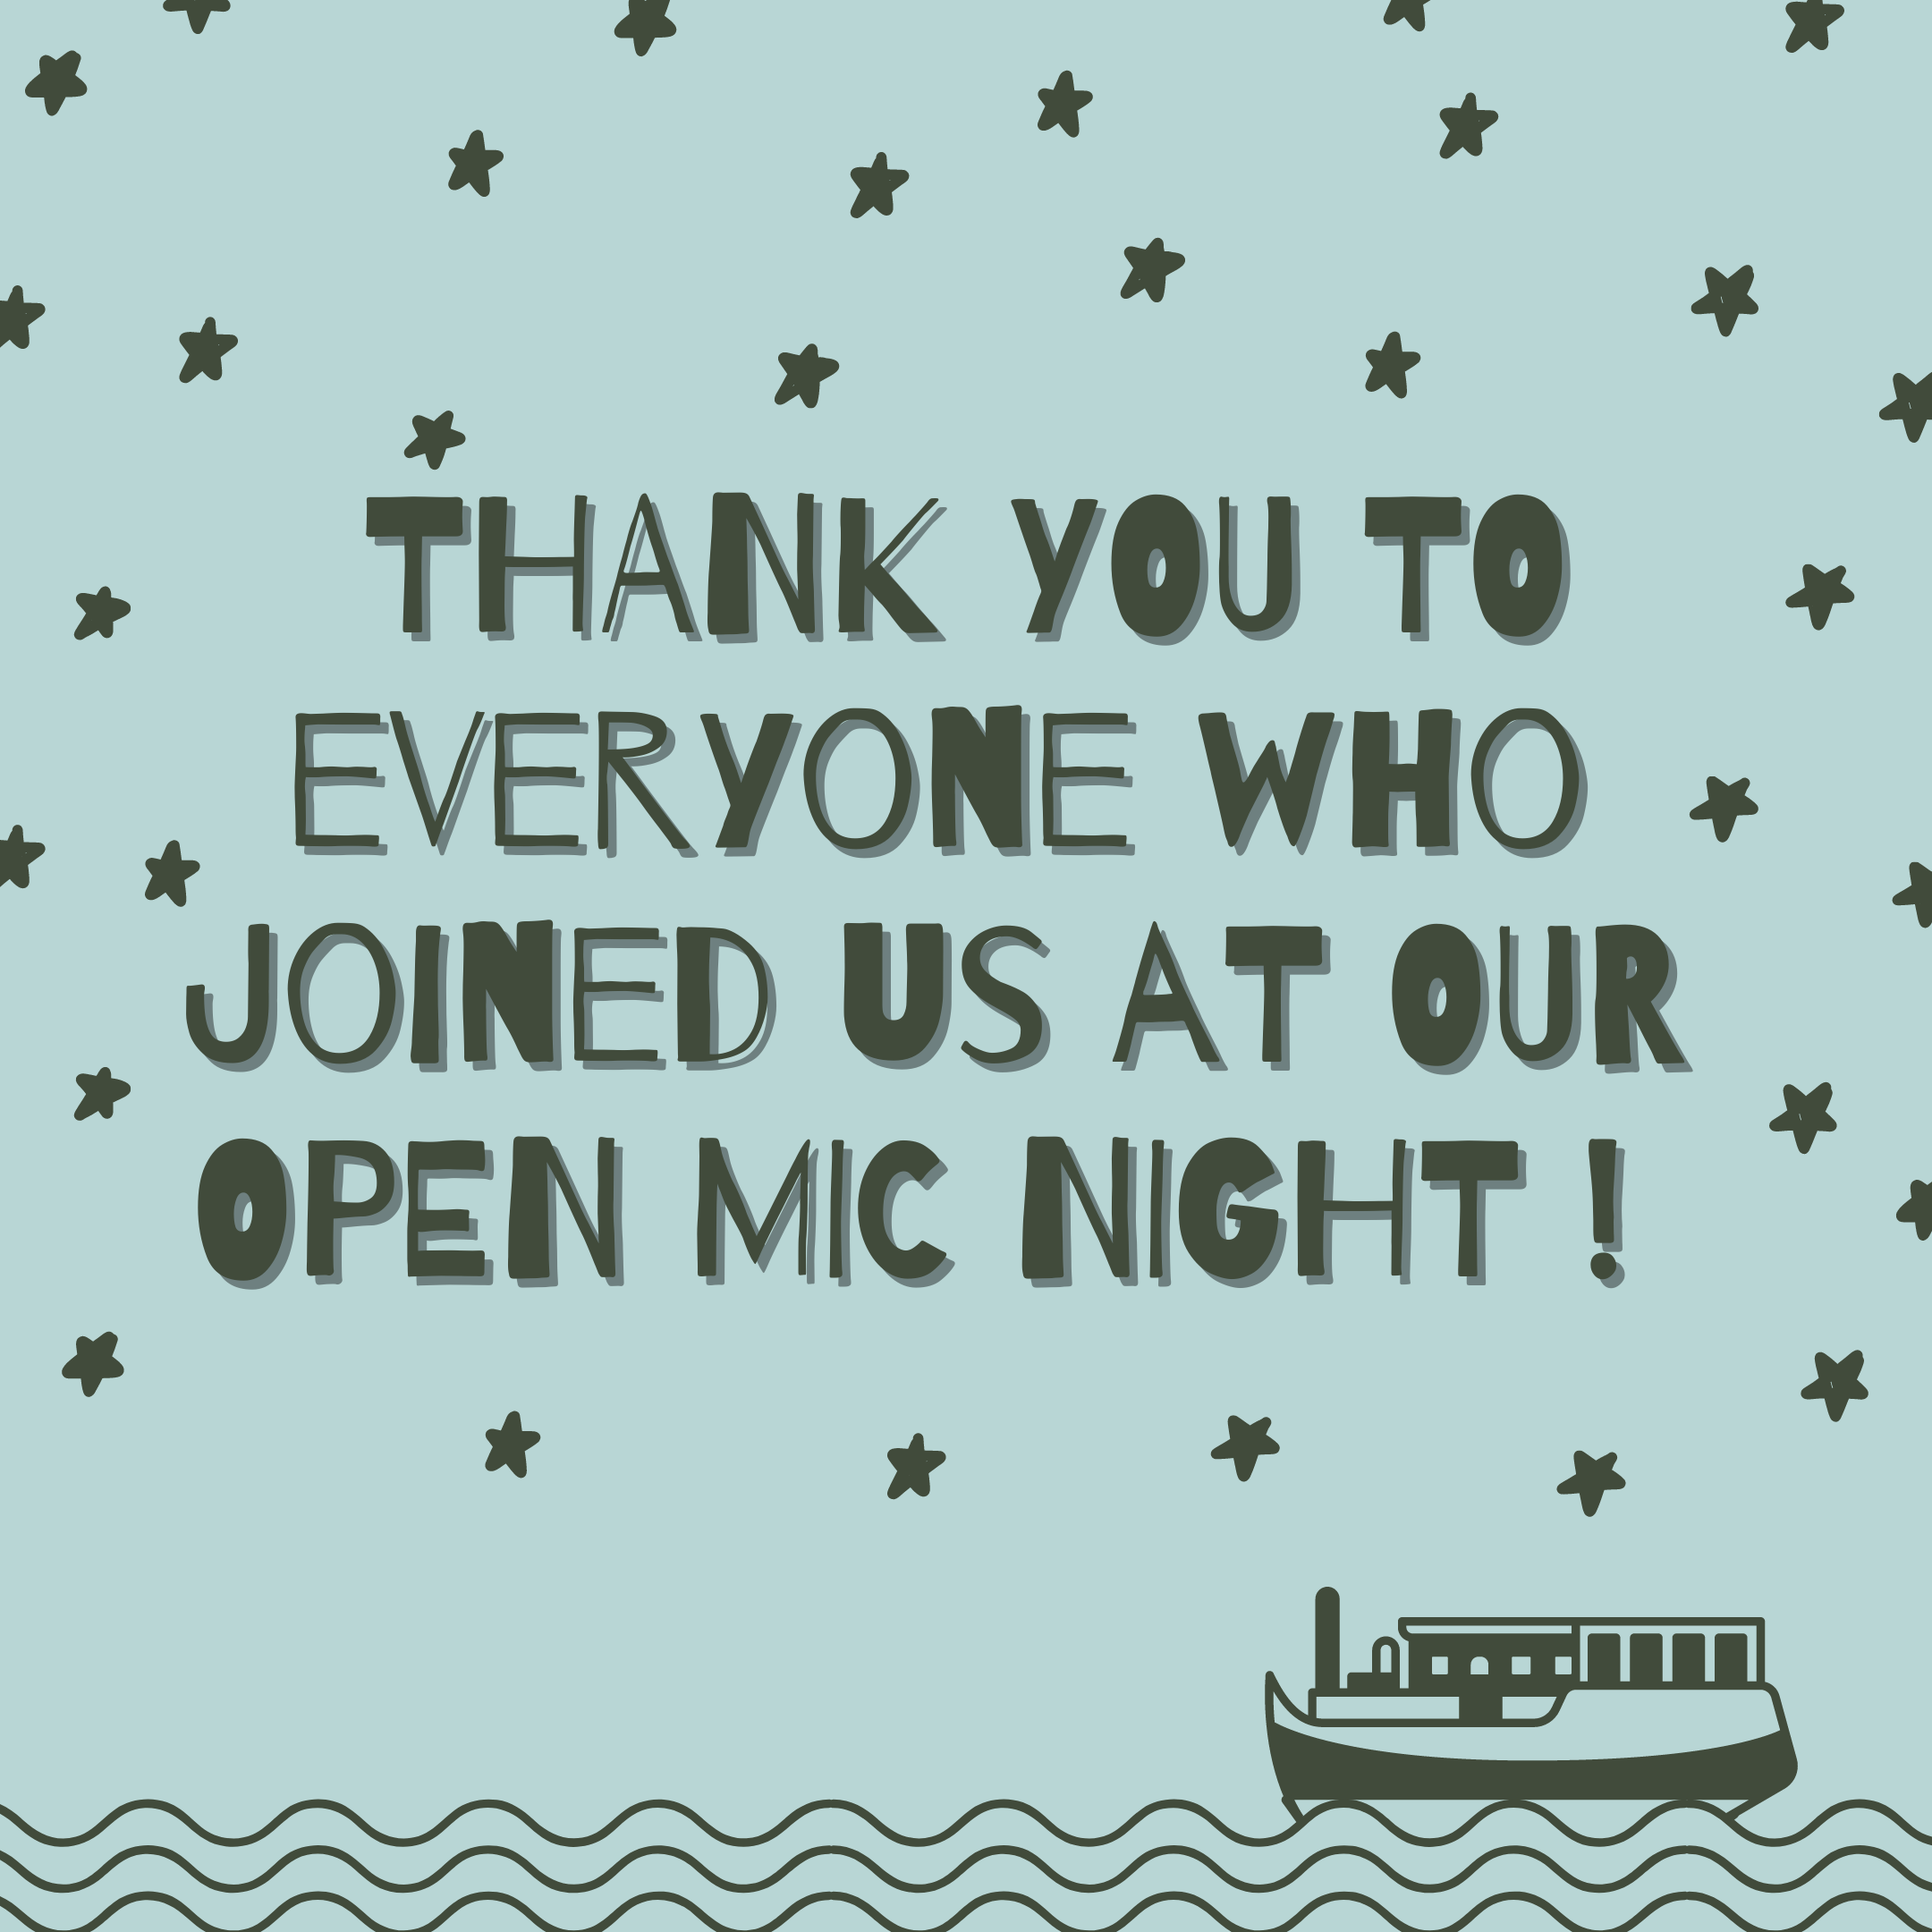 Thank you to everyone who came to our Open Mic Night at Word on the Water!